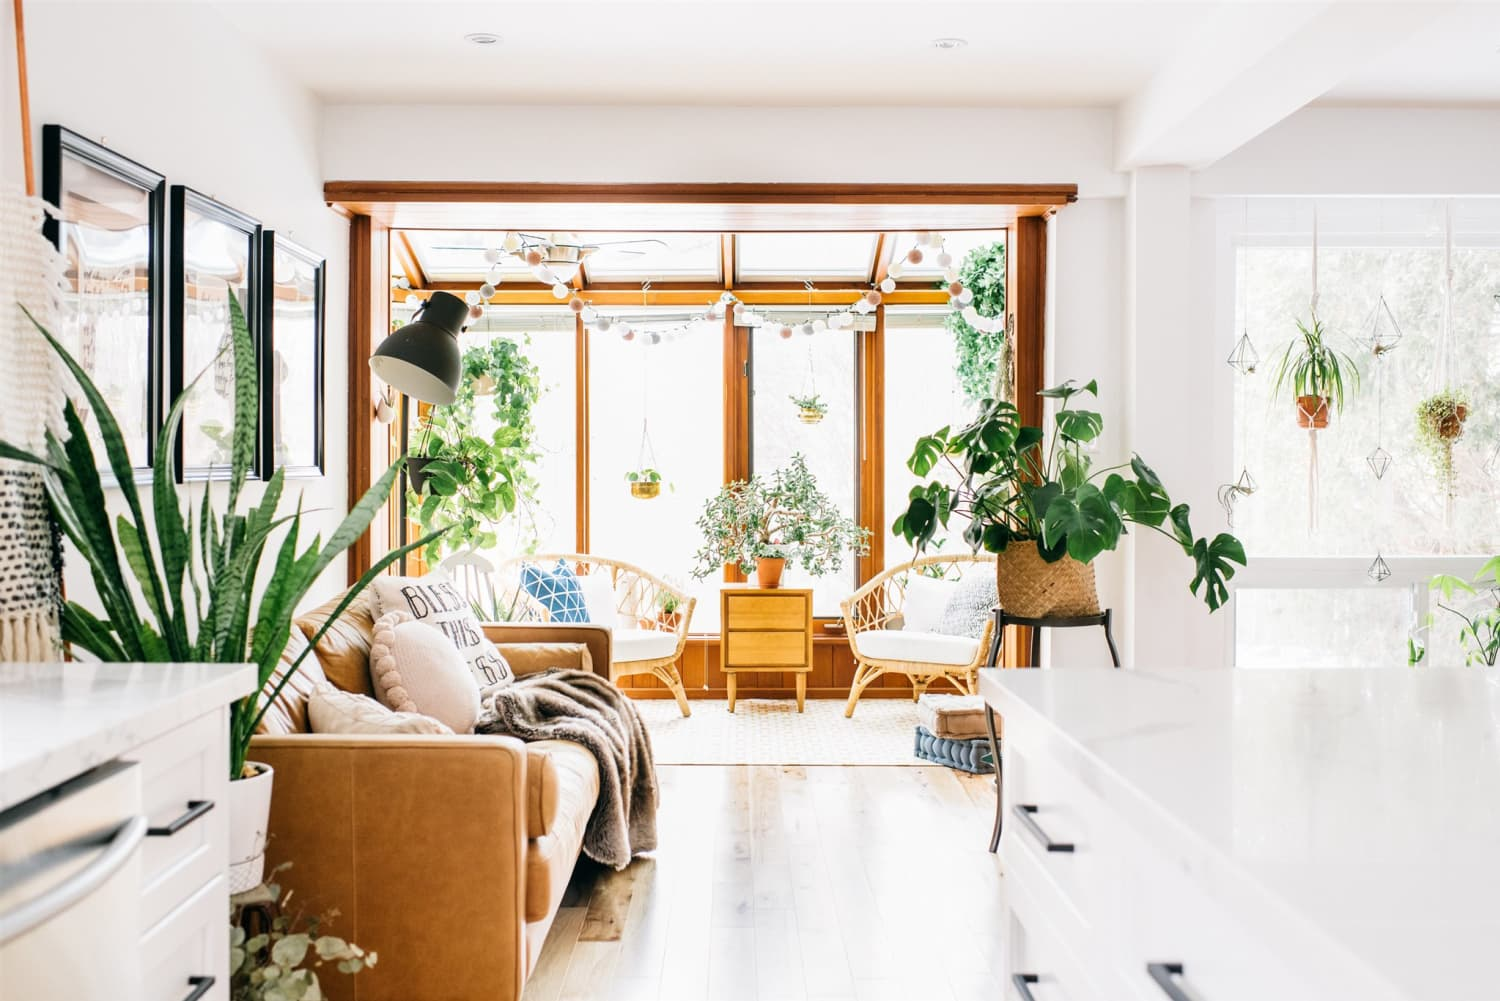 This Sunny Home Has 75 Houseplants… Each with Its Own Name!